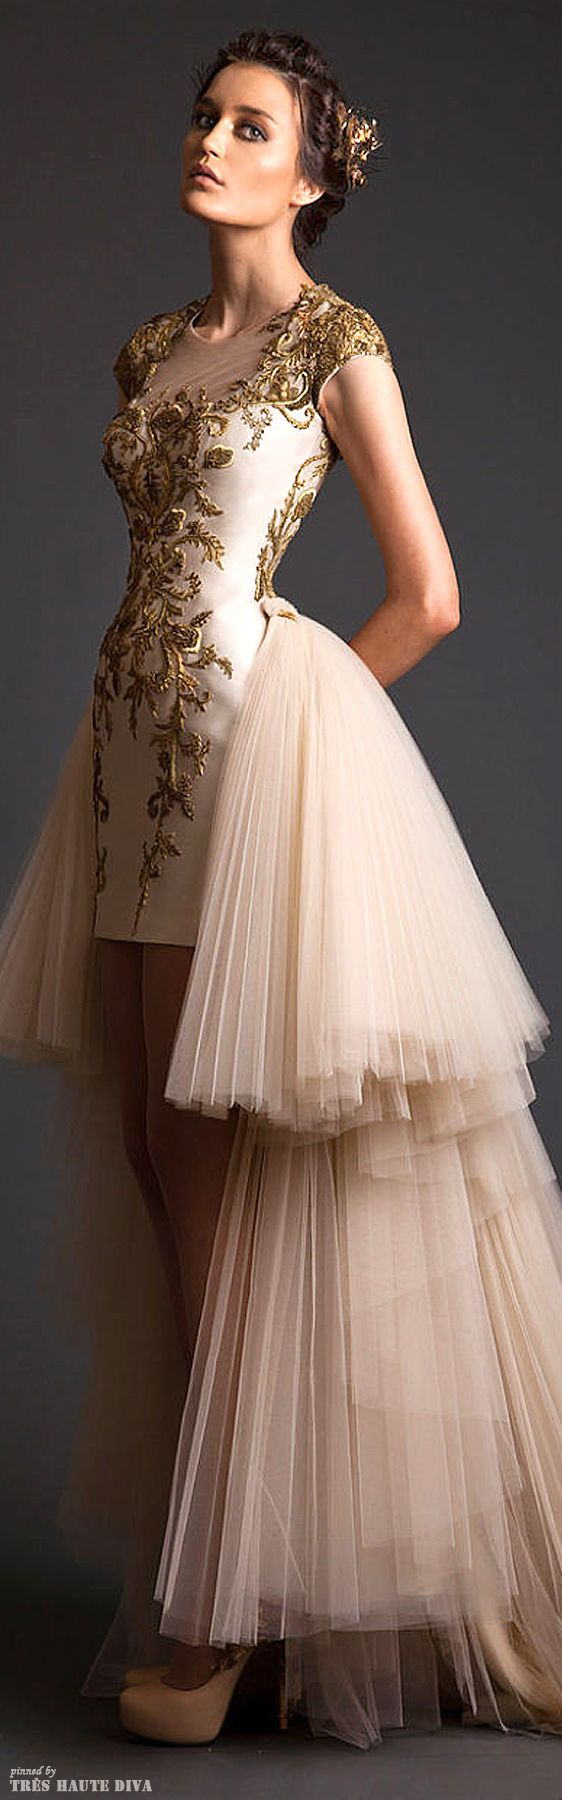 Love the gold and the fit! But not the skirt.  Krikor Jabotian Couture S/S 2014 Brocade Dress